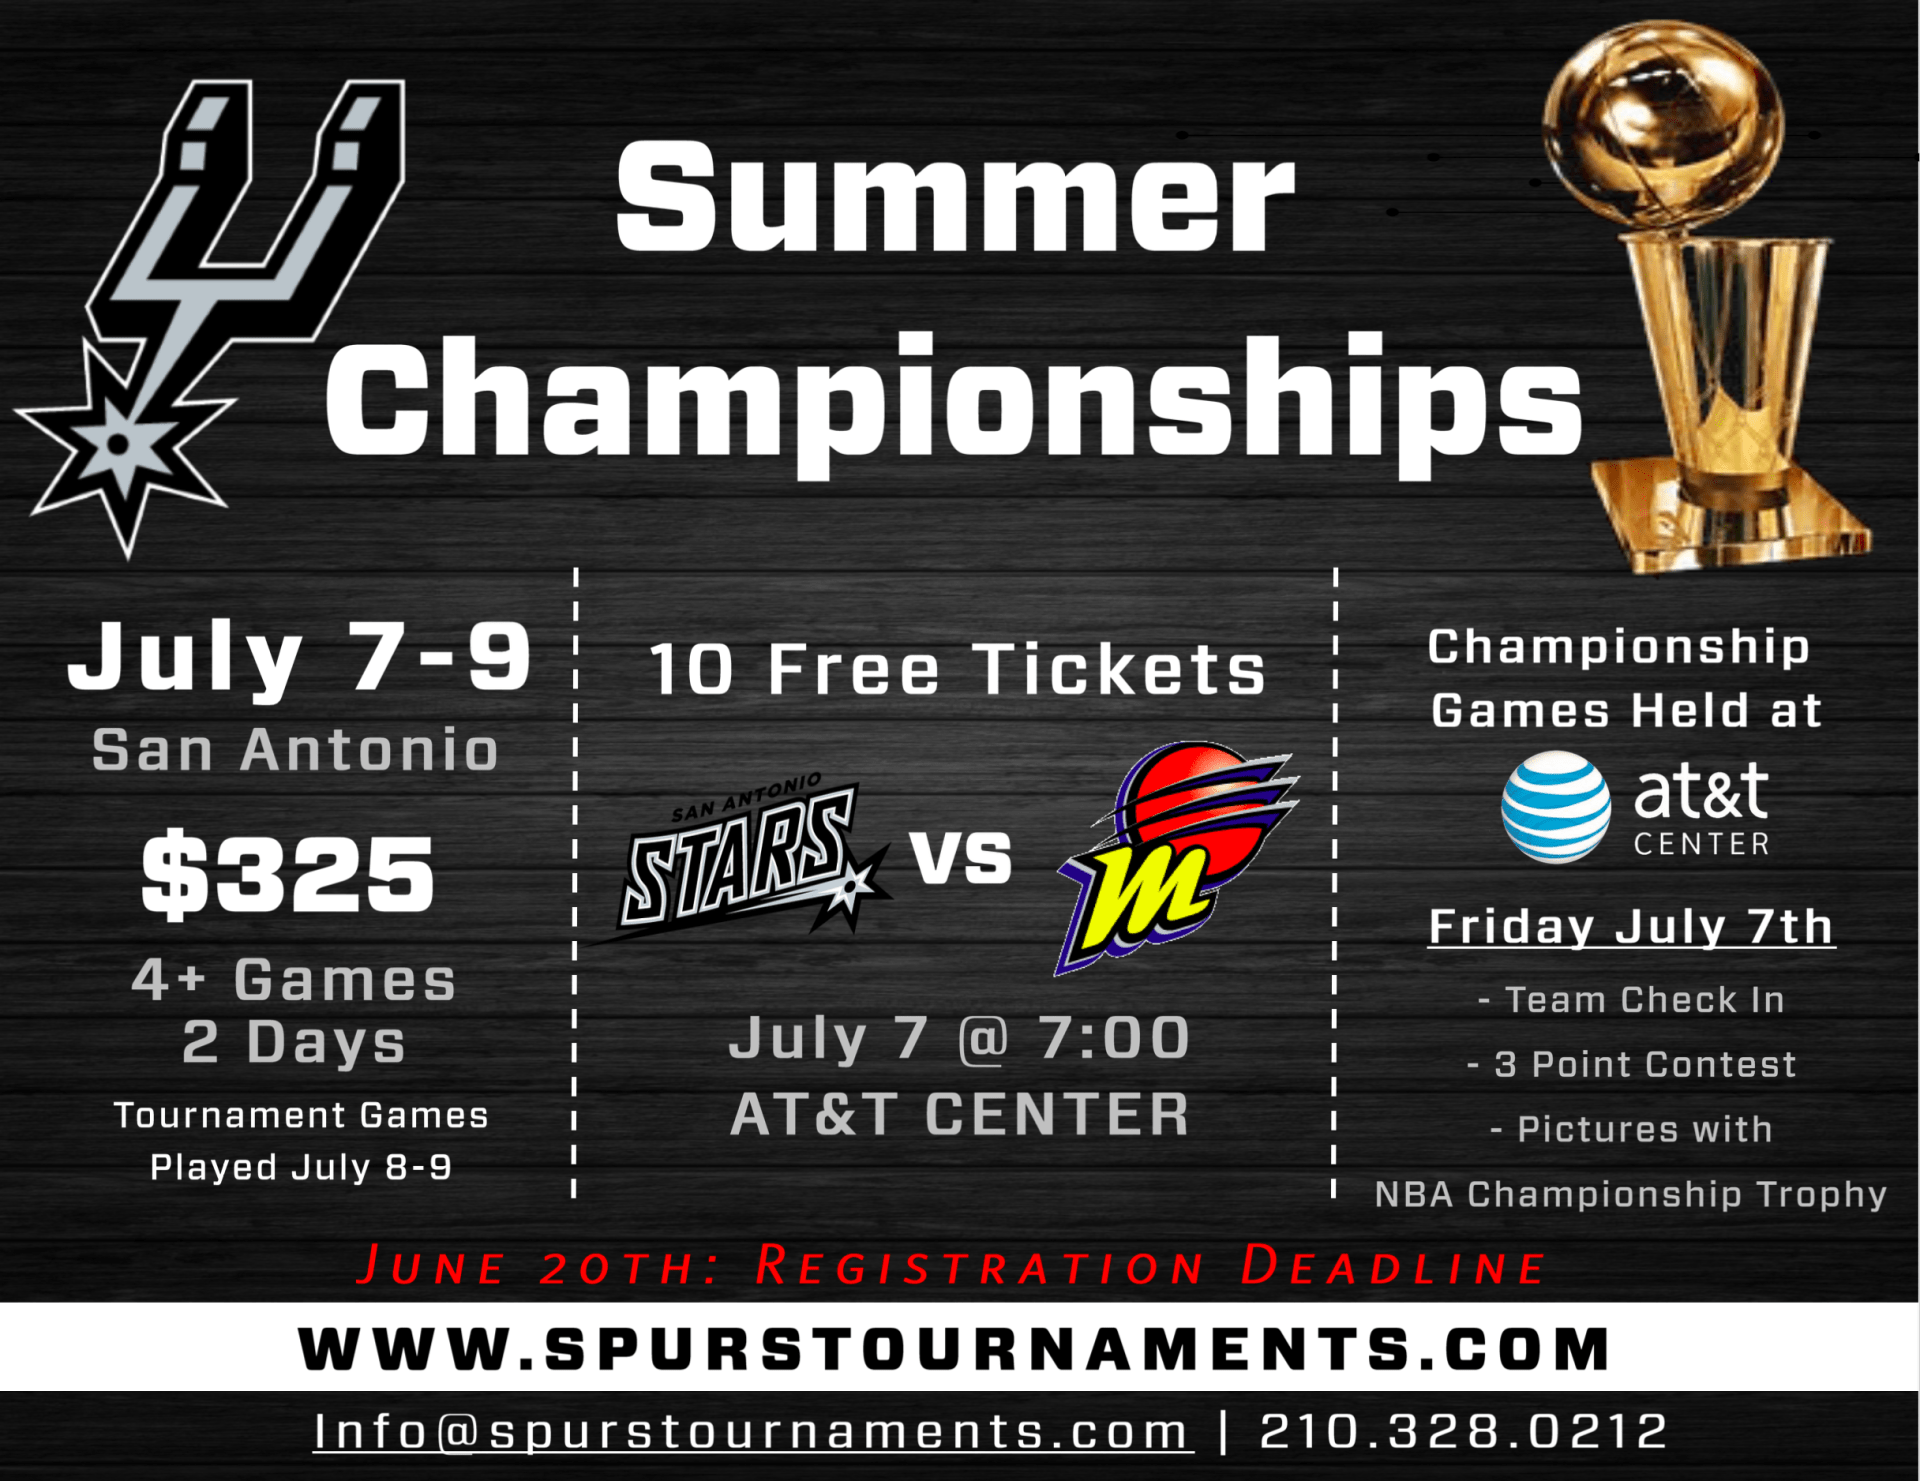 Summer Championships July 7-9